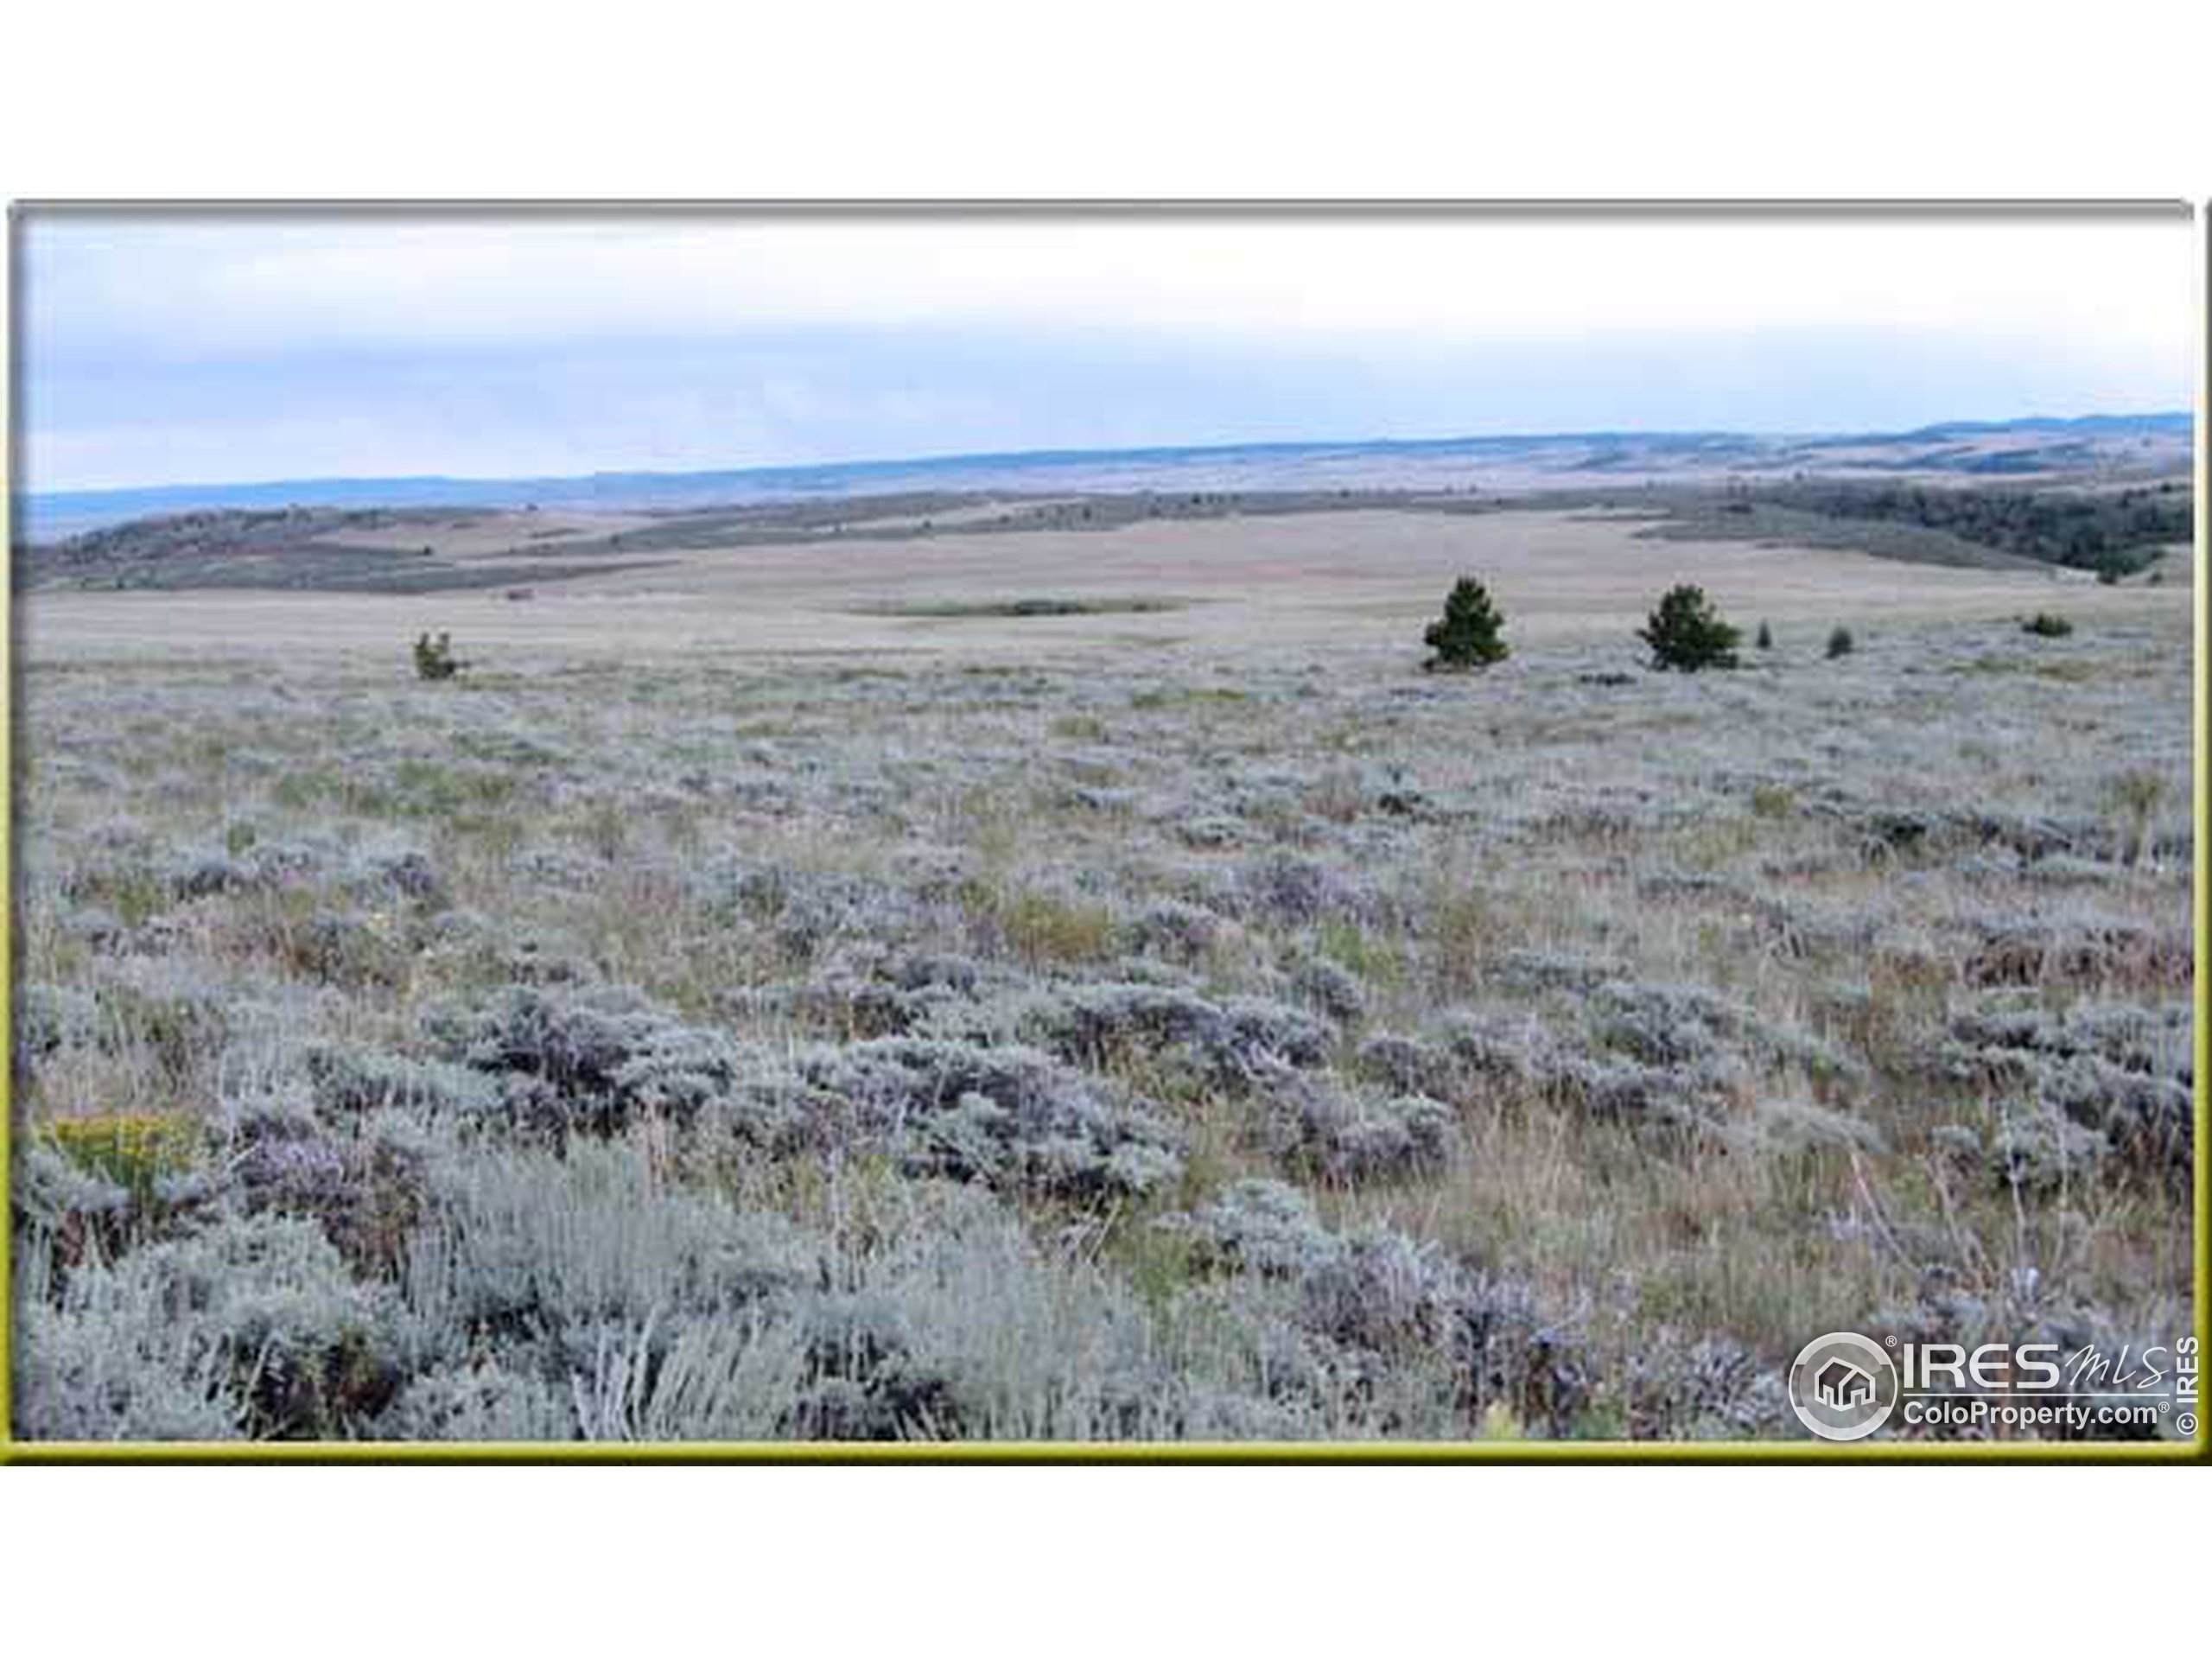 5304 W 5th St, Greeley, CO 80634 (MLS #934264) :: Fathom Realty